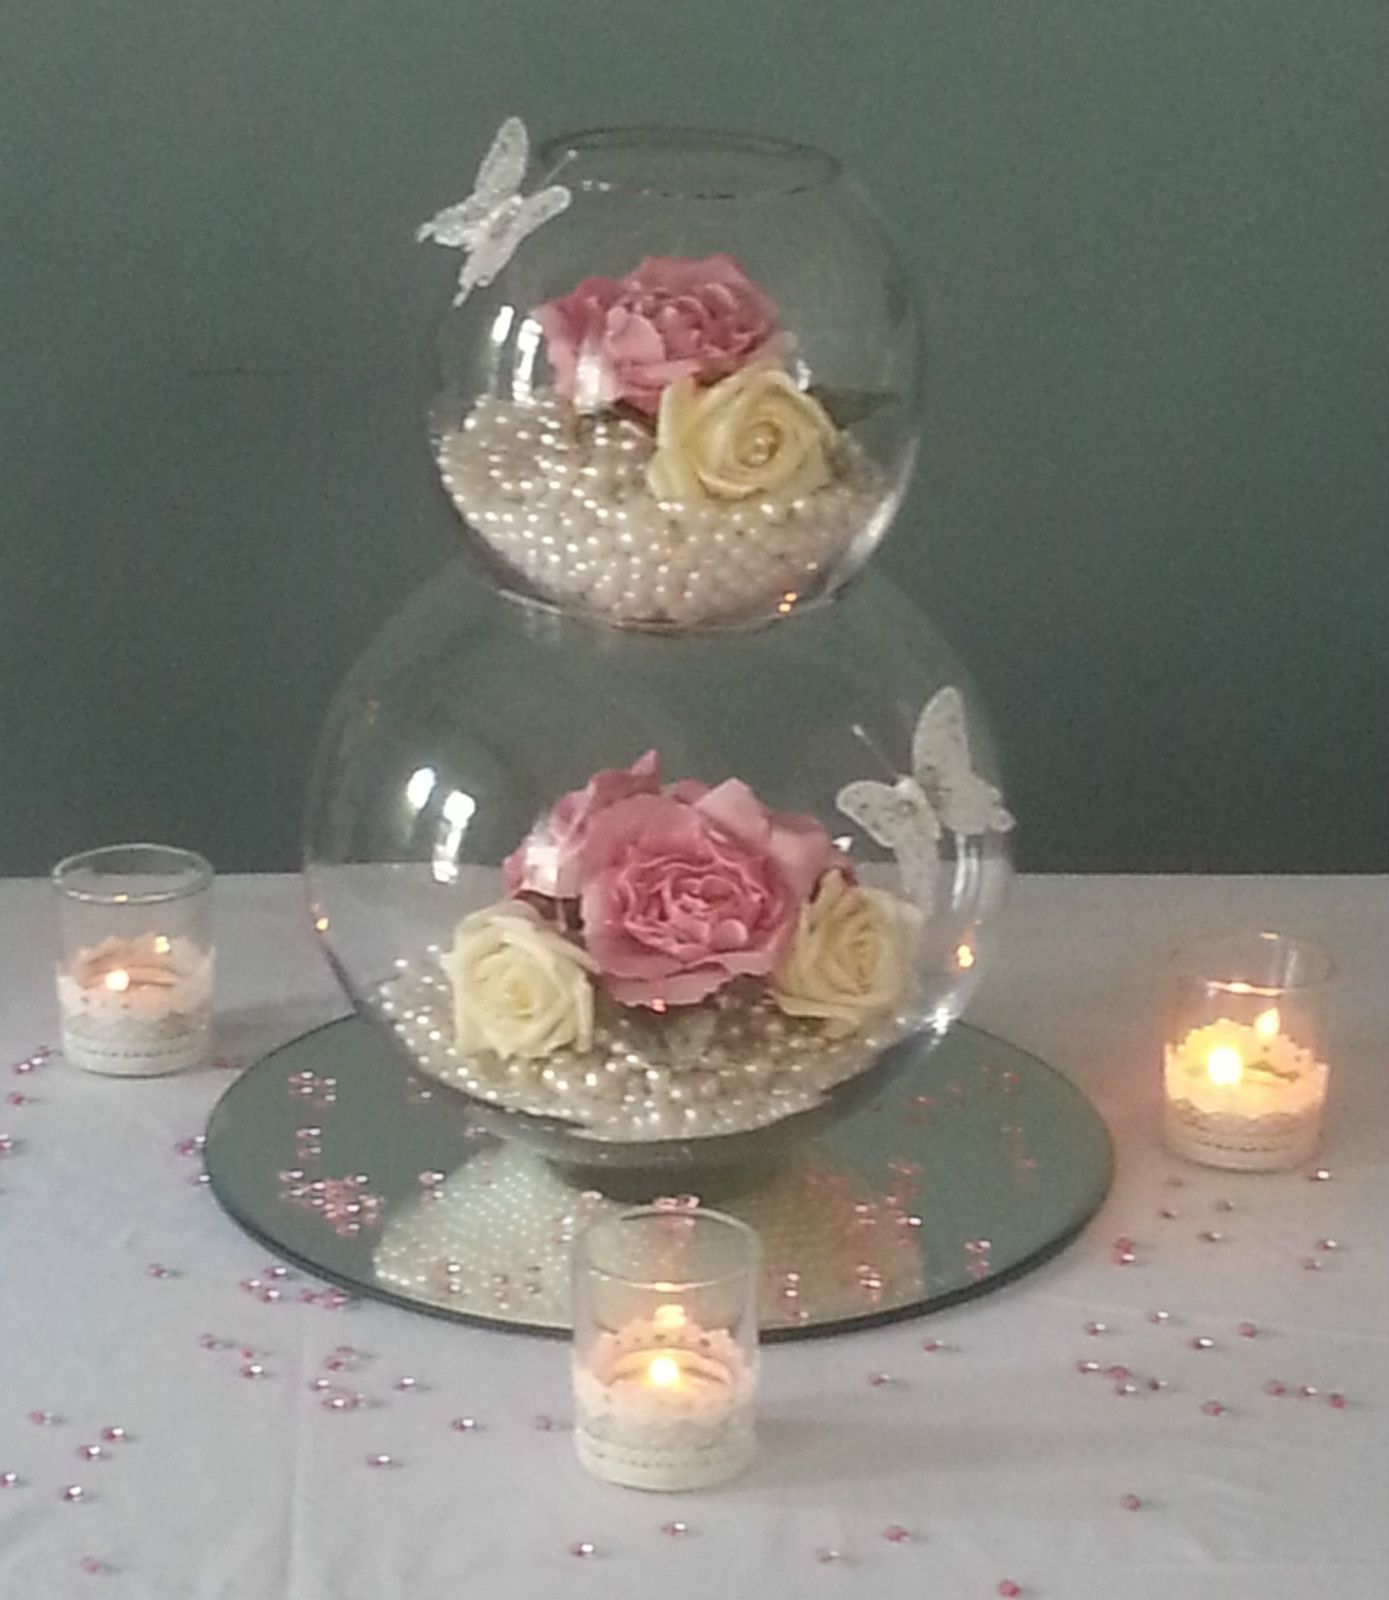 Gorgeous Centrepieces To Hire To Make Your Tables Look Stunning Www Sapphirepersonalisedevents C Wedding Centerpieces Wedding Table Centerpieces Centerpieces